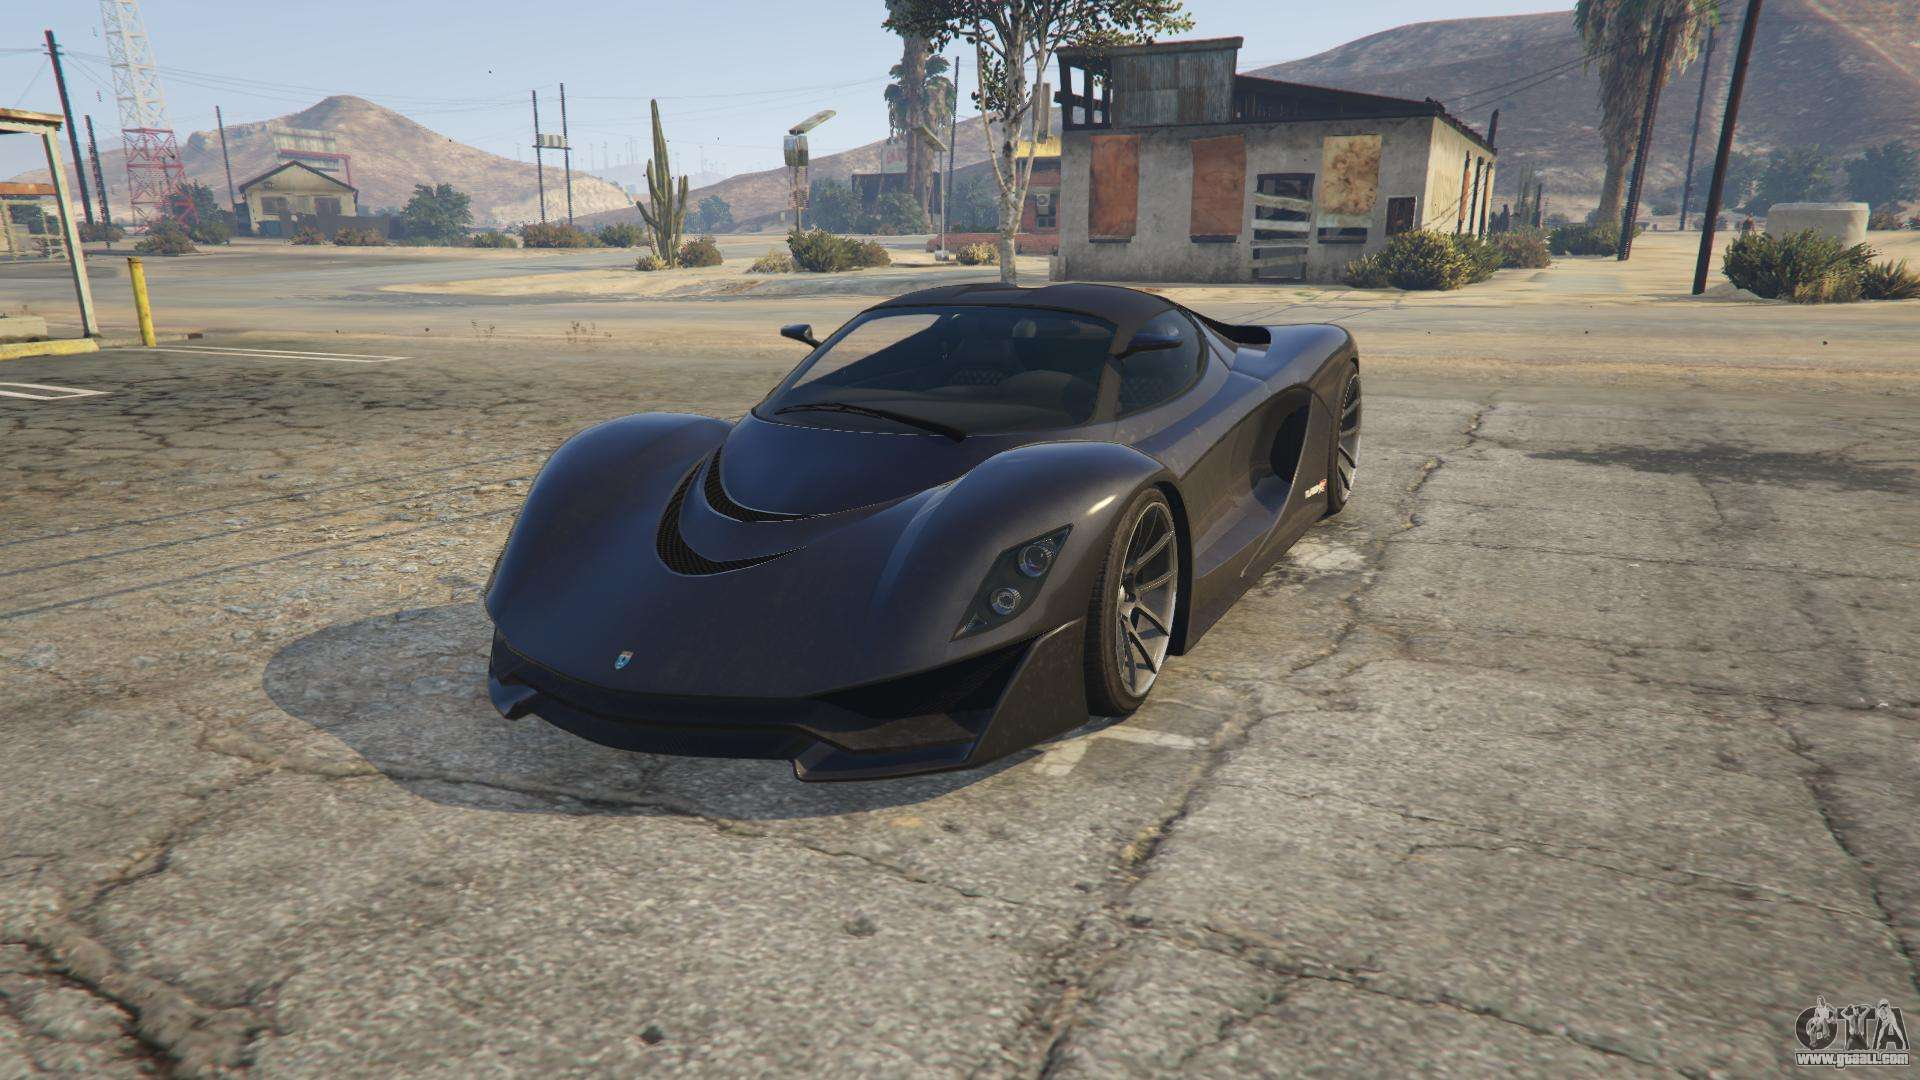 100 rc planes with 27614 Grotti Turismo R on 27617 Pegassi Zentorno furthermore Haba Freundebuch Minimonster Meine Kindergarten Freunde likewise Watch together with 27614 Grotti Turismo R in addition Is This The End For The Legendary Soviet Antonov Aircraft 812490.